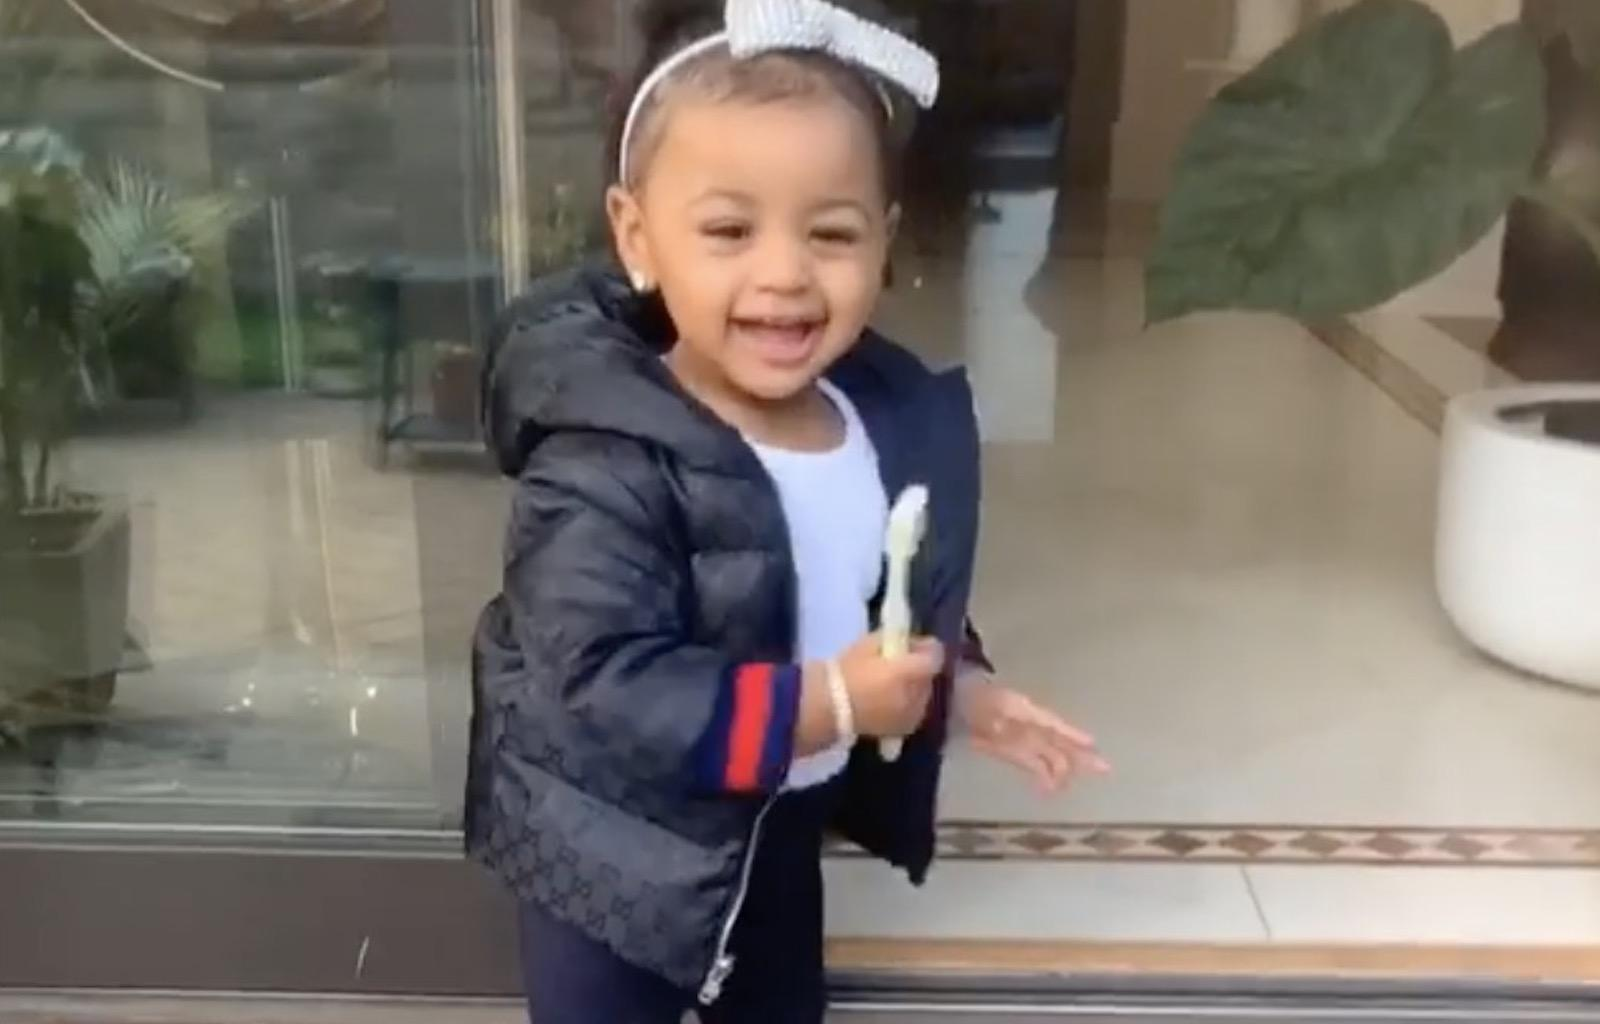 Cardi B's Daughter Kulture Shows Off Her Singing And Dancing In New Adorable Clip With Her Auntie!